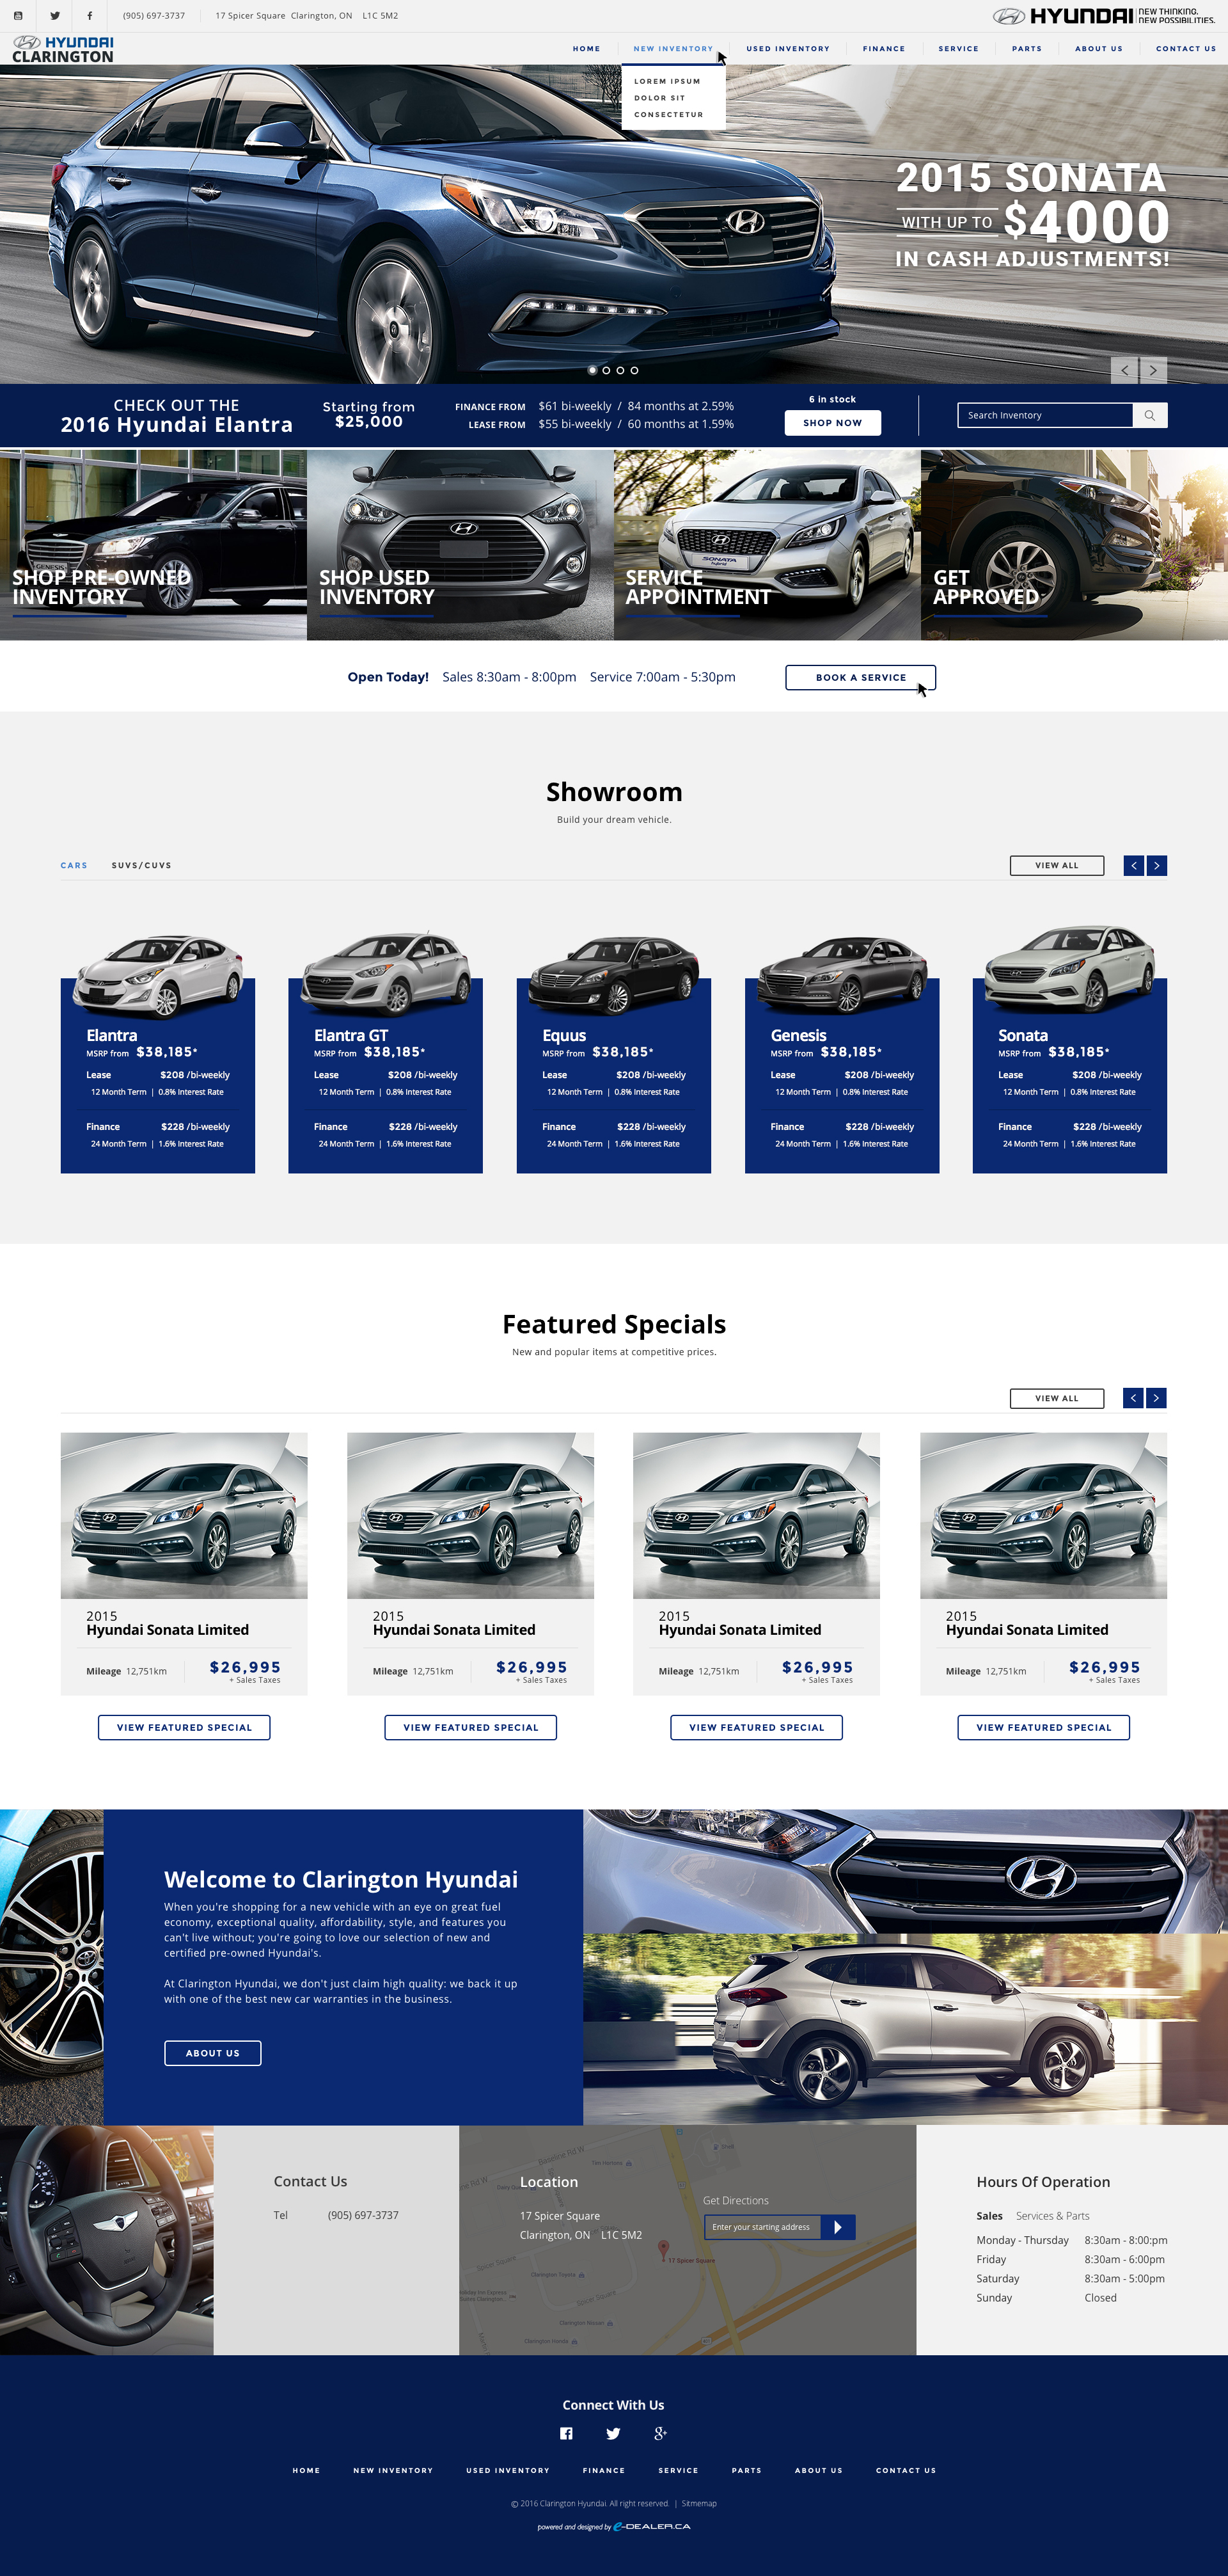 ClargintonHyundai-Design-Final